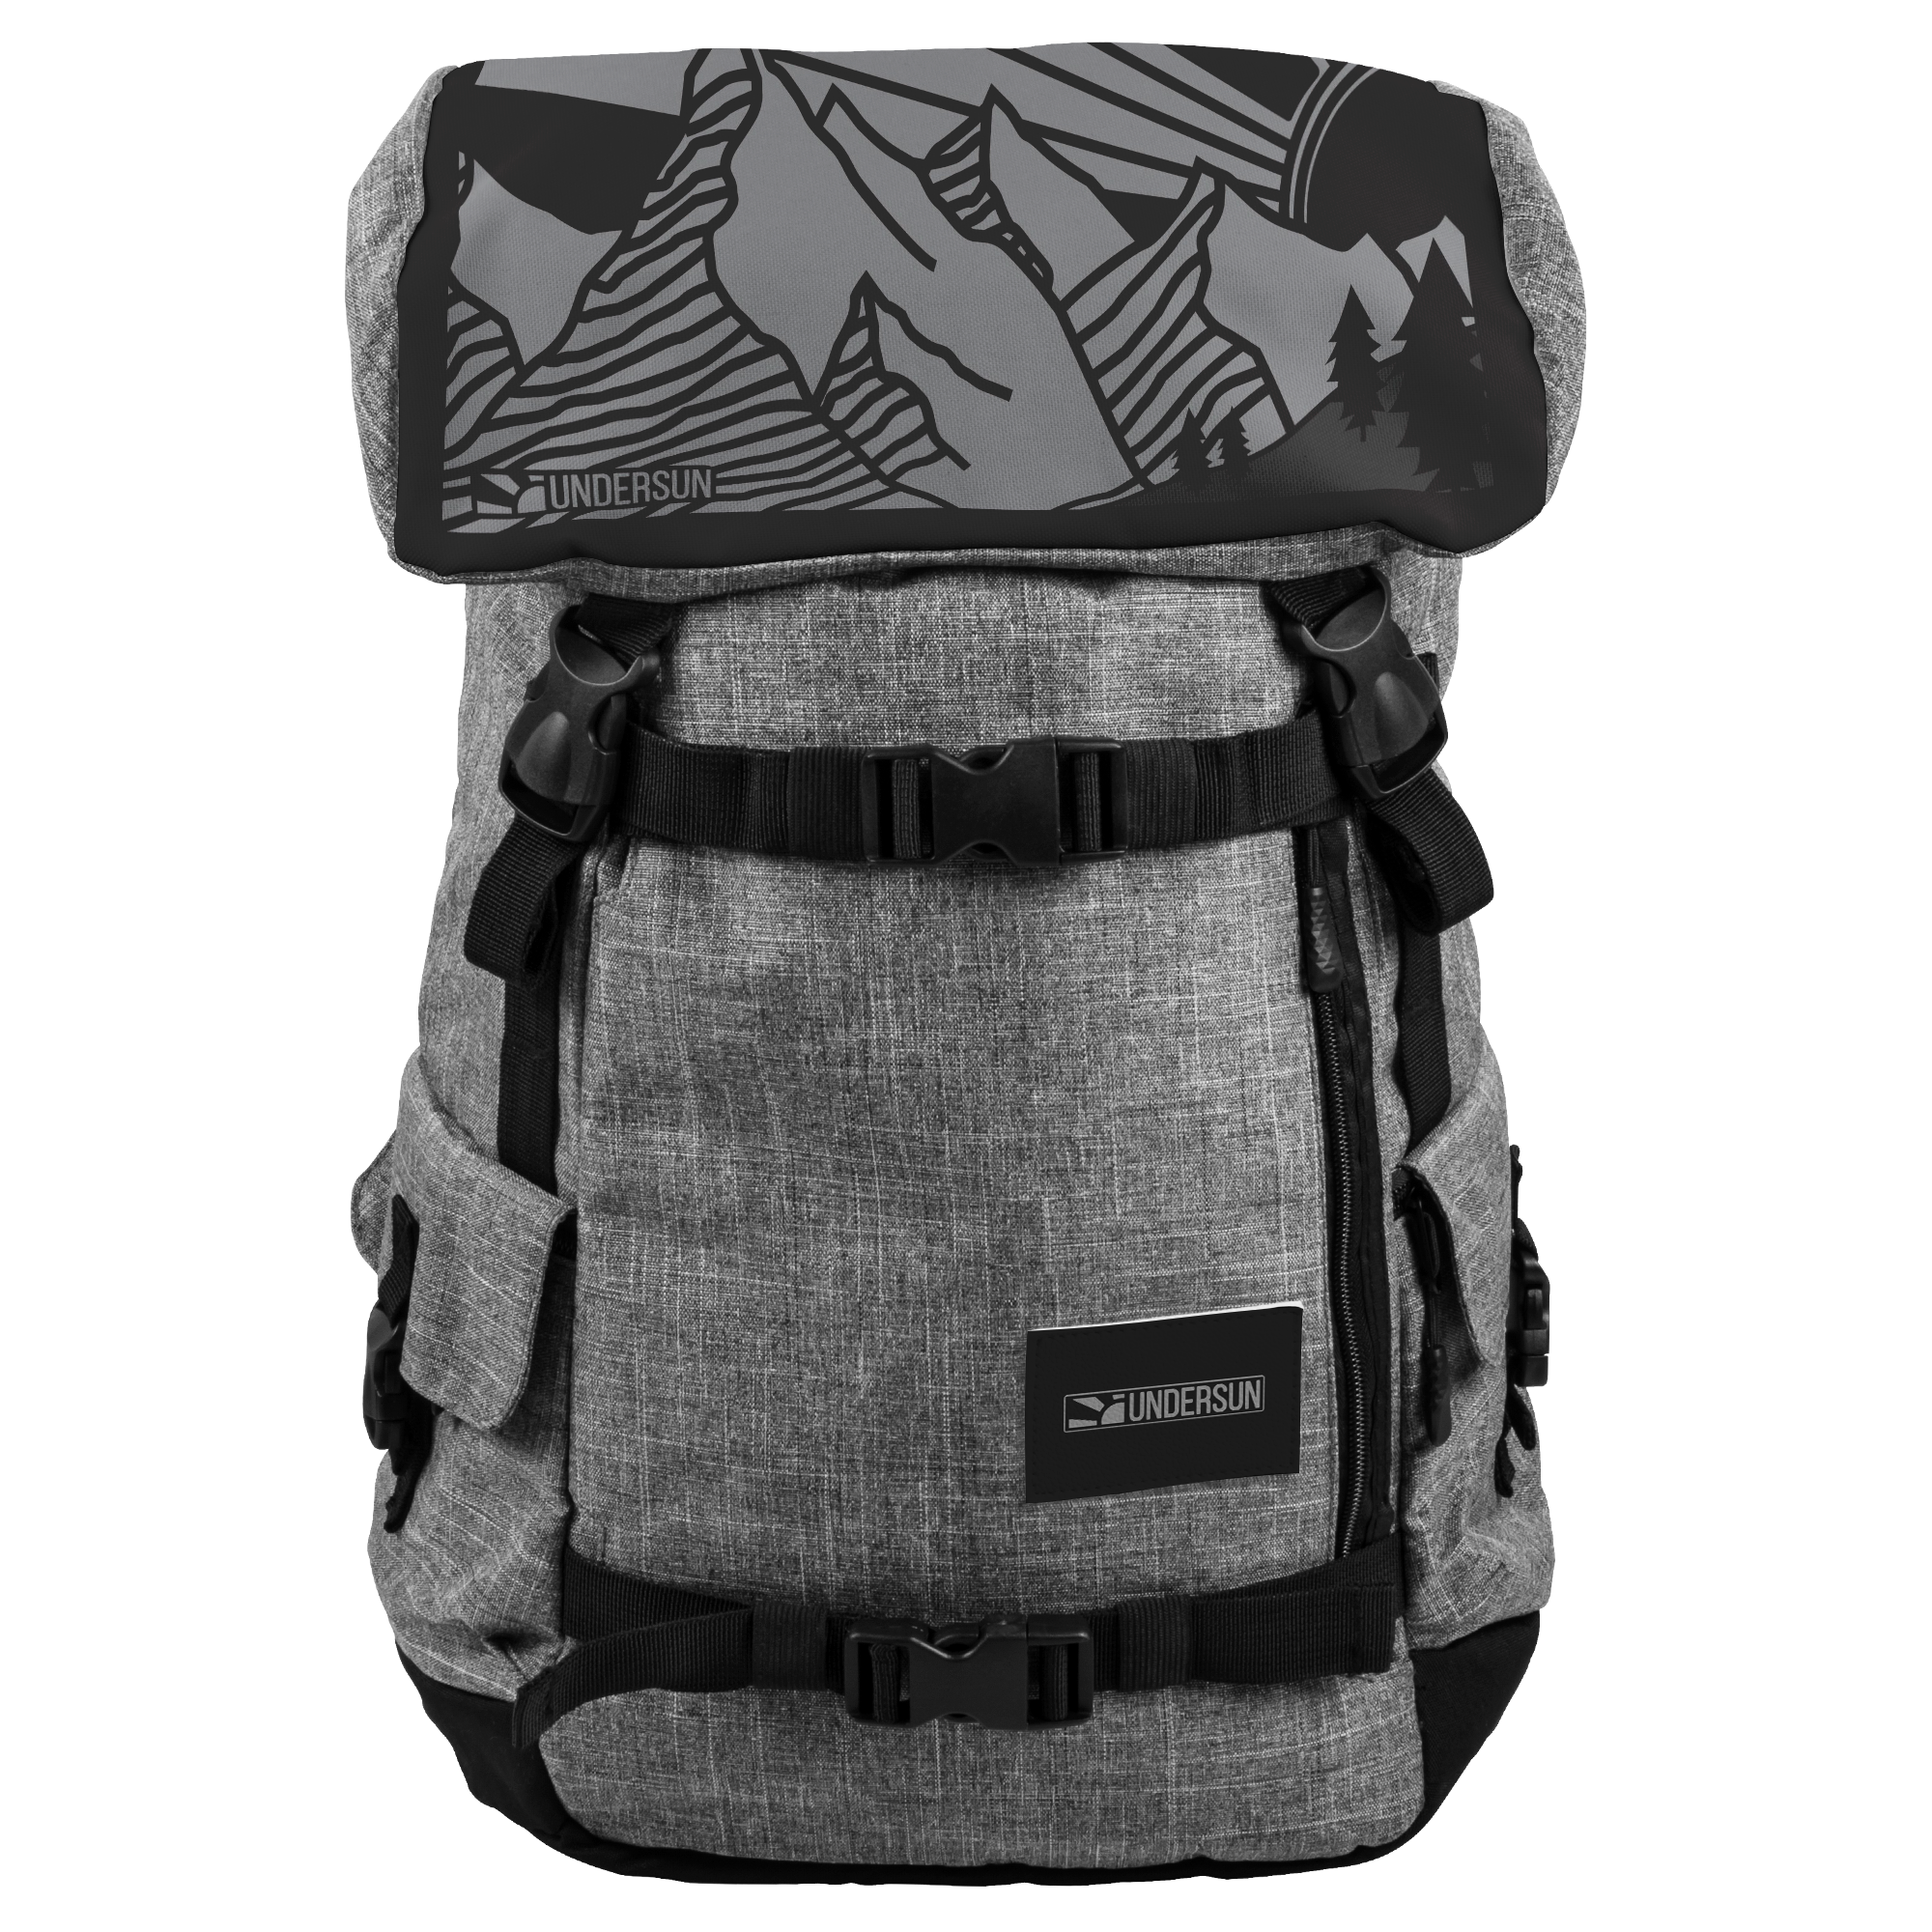 Undersun Signature Backpack - Mountain Sun - backpack / Grey/Black - Undersun Fitness